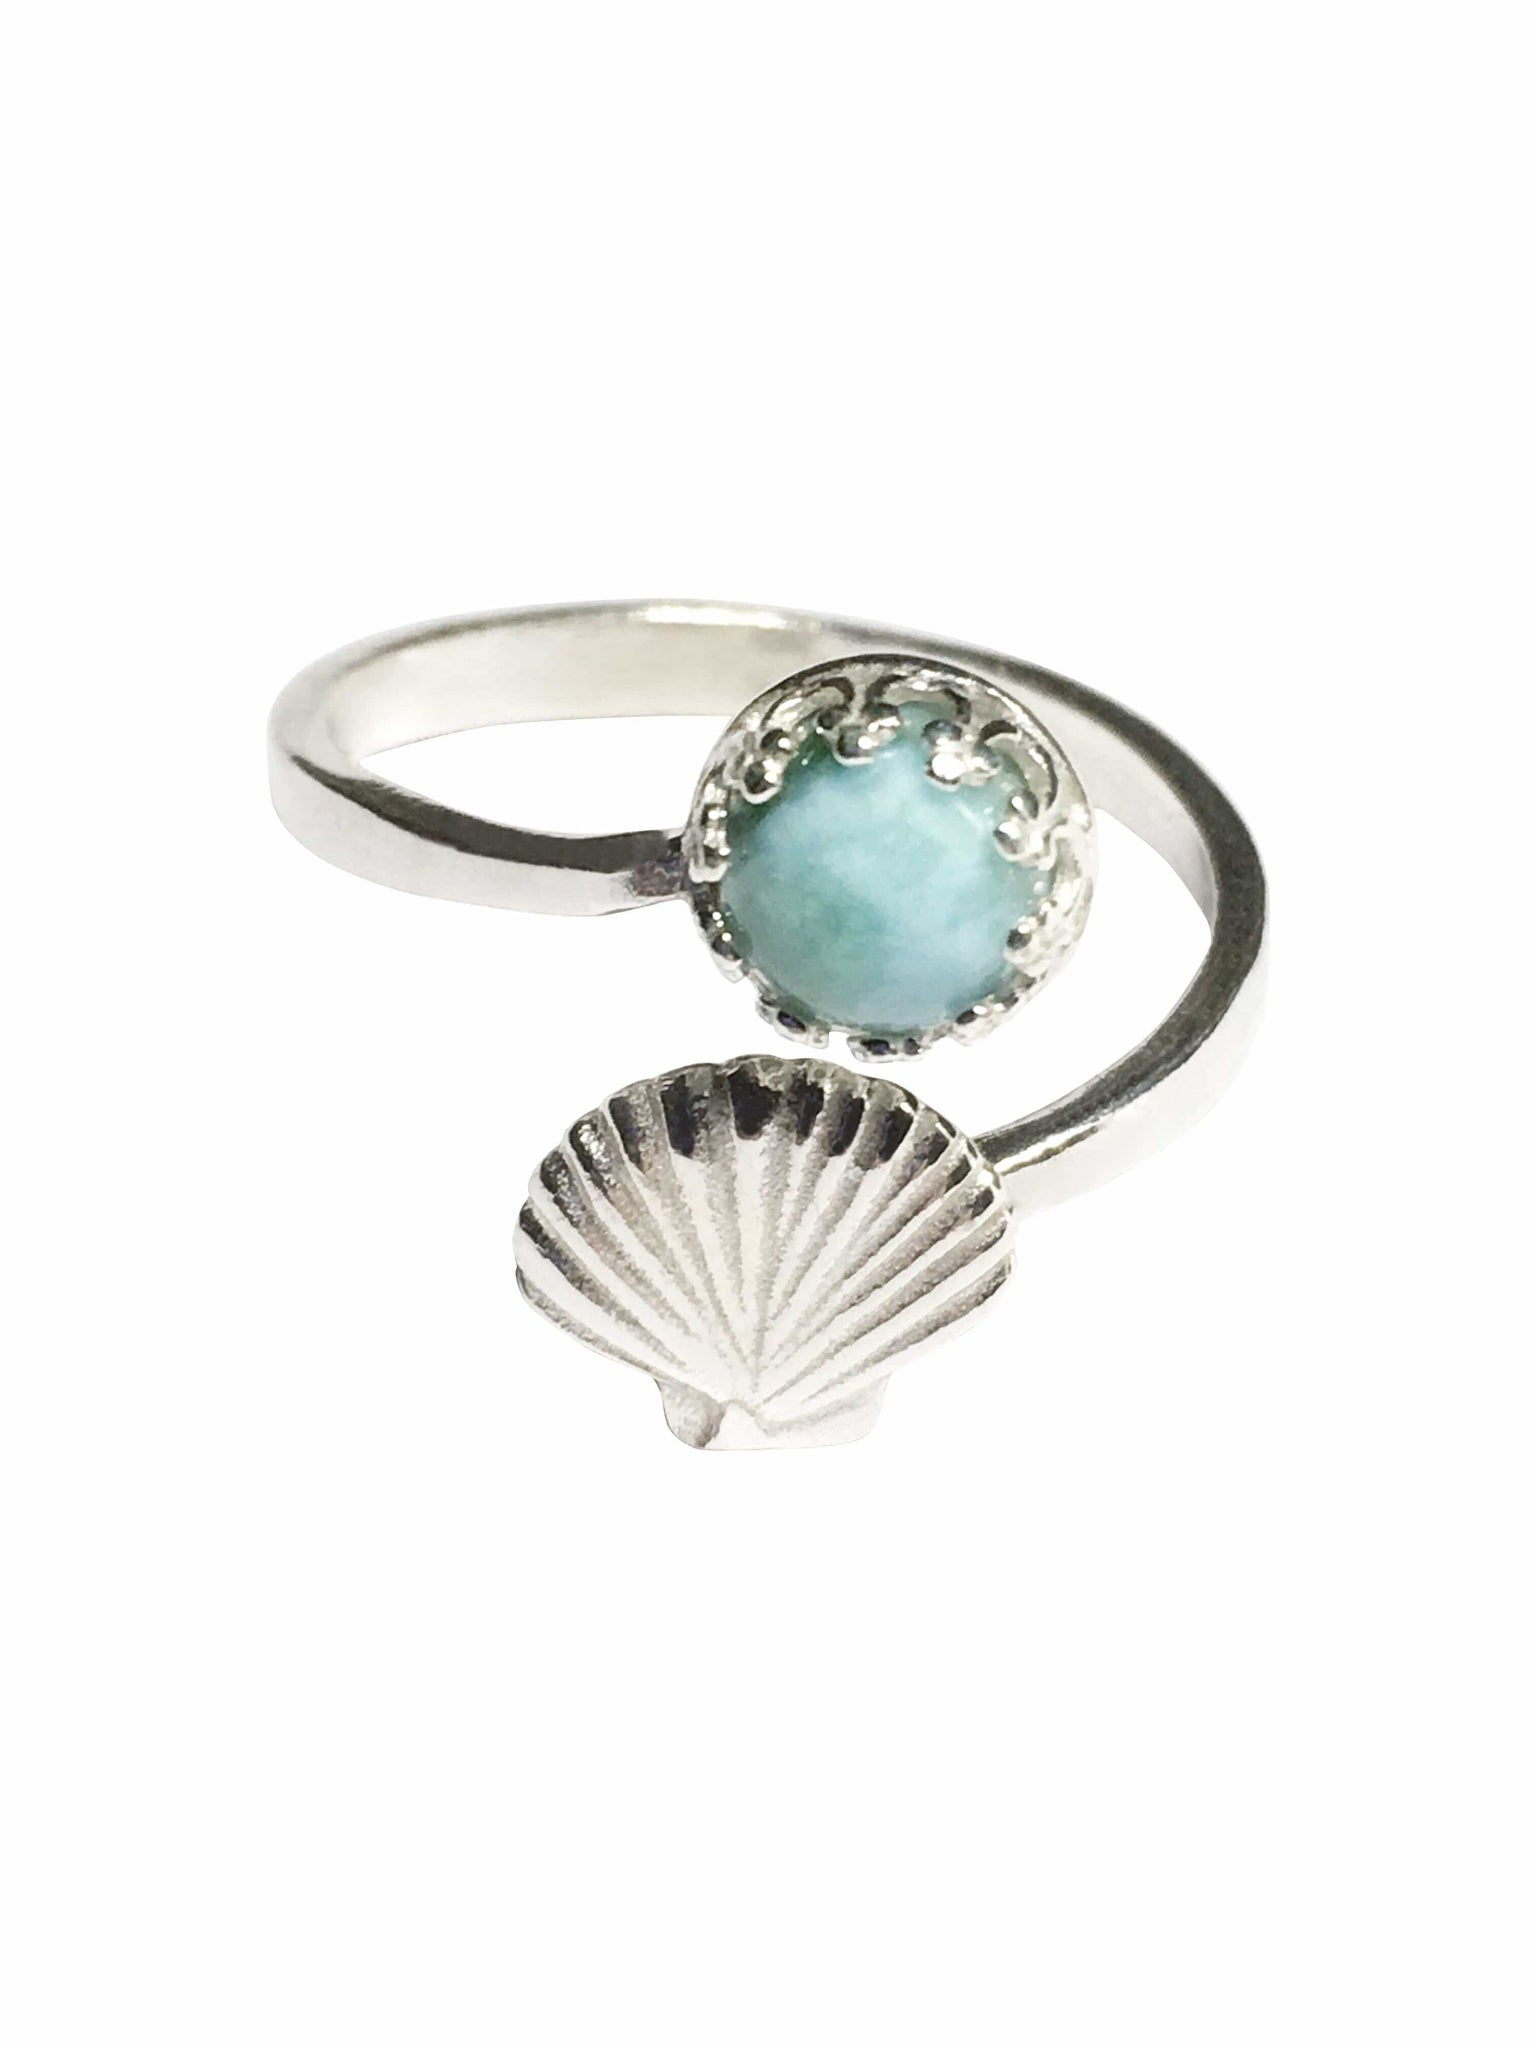 Handmade Sterling Silver Larimar Gemstone Shell Ring